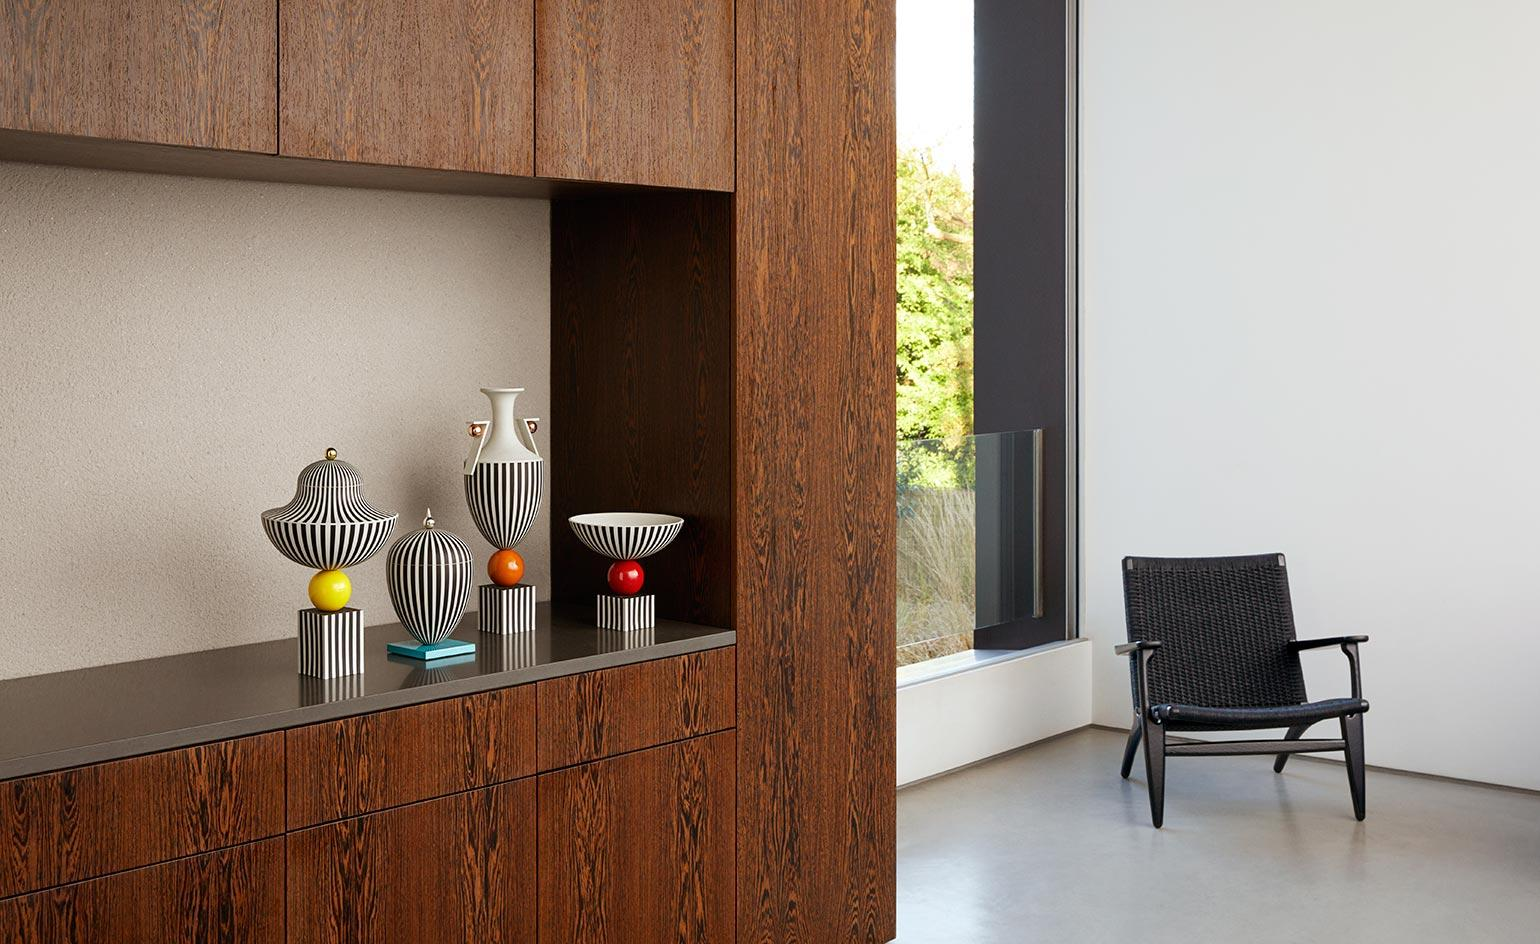 Stripe show: the limited-edition Wedgwood by Lee Broom collection is top of the lines